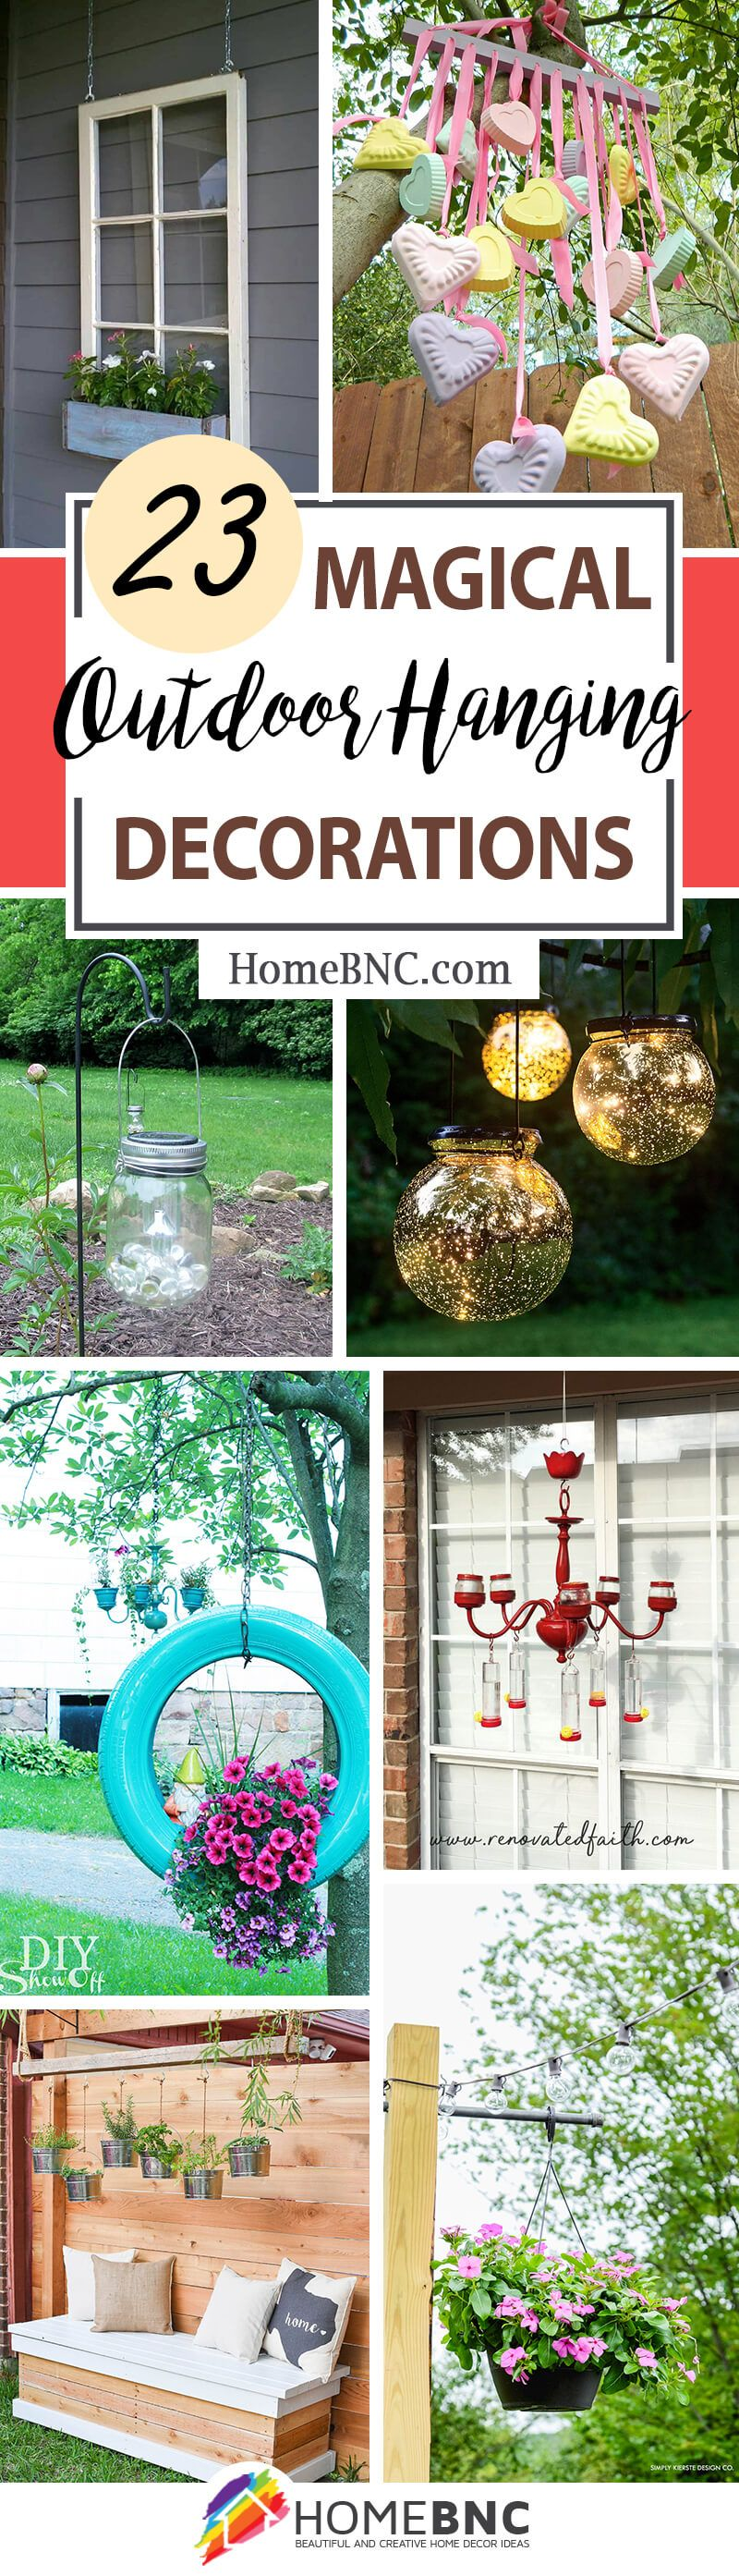 10 Magical Outdoor Hanging Decoration Ideas to Bring Your Patio to